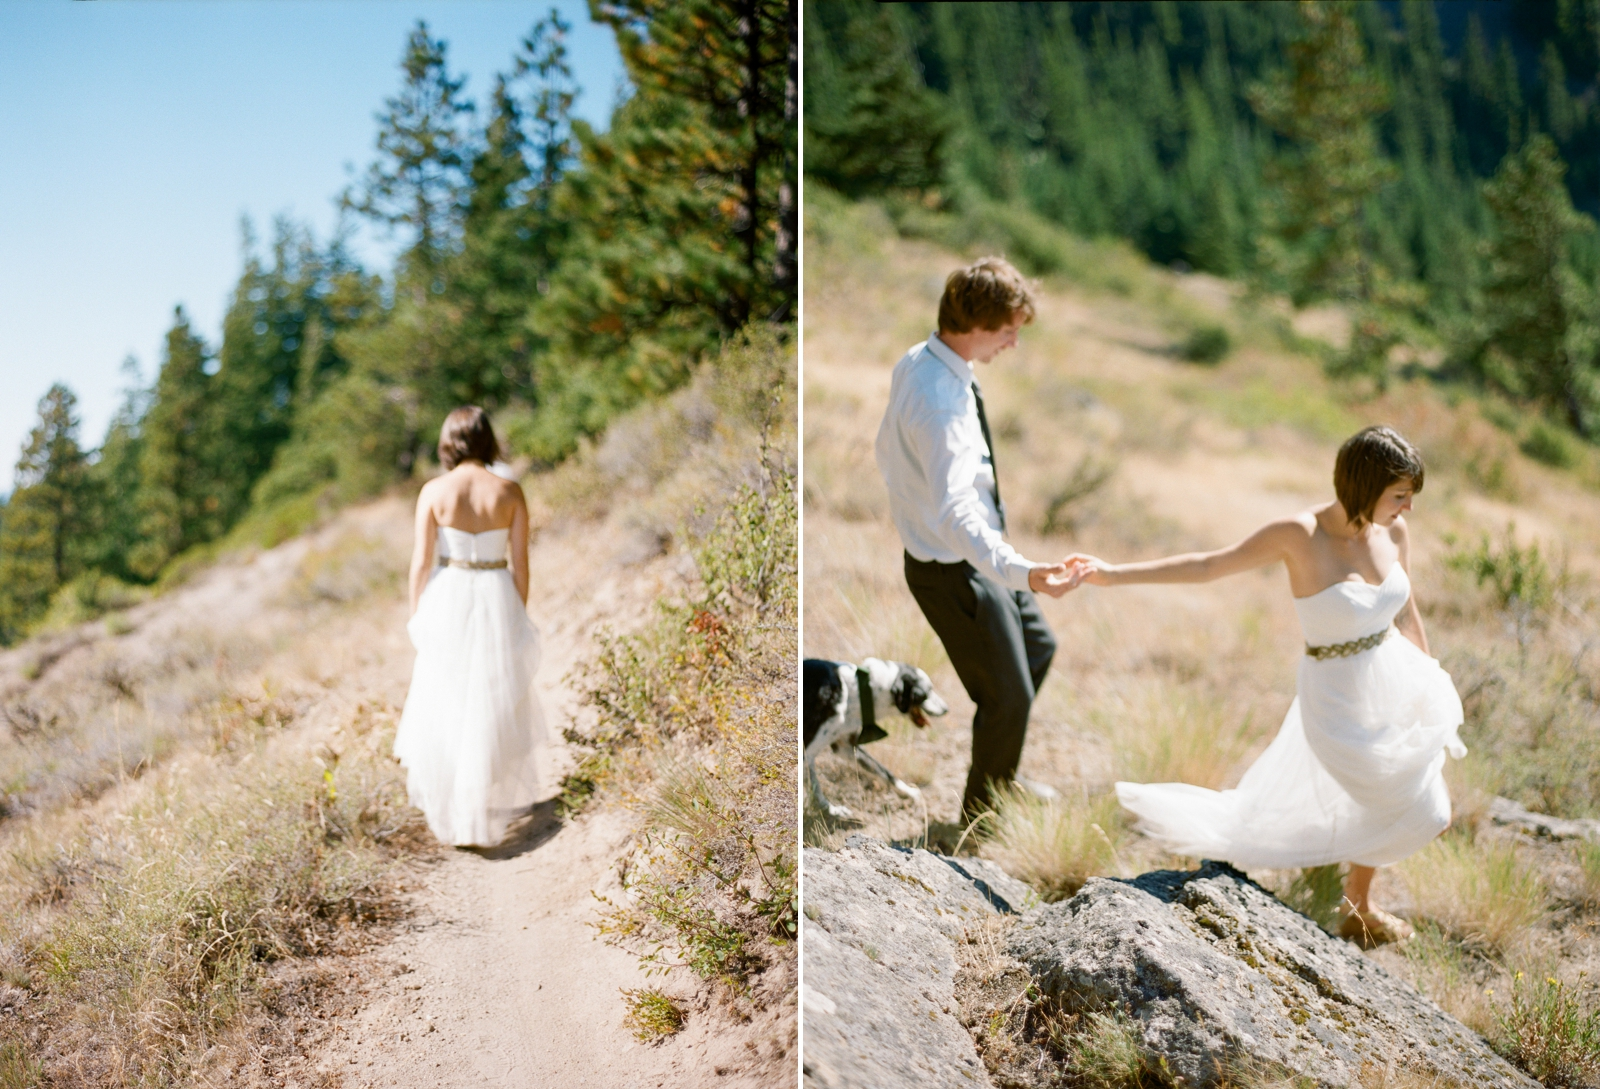 mt hood wedding photographer mt hood oregon wedding photographer shannon griffin_0065.jpg